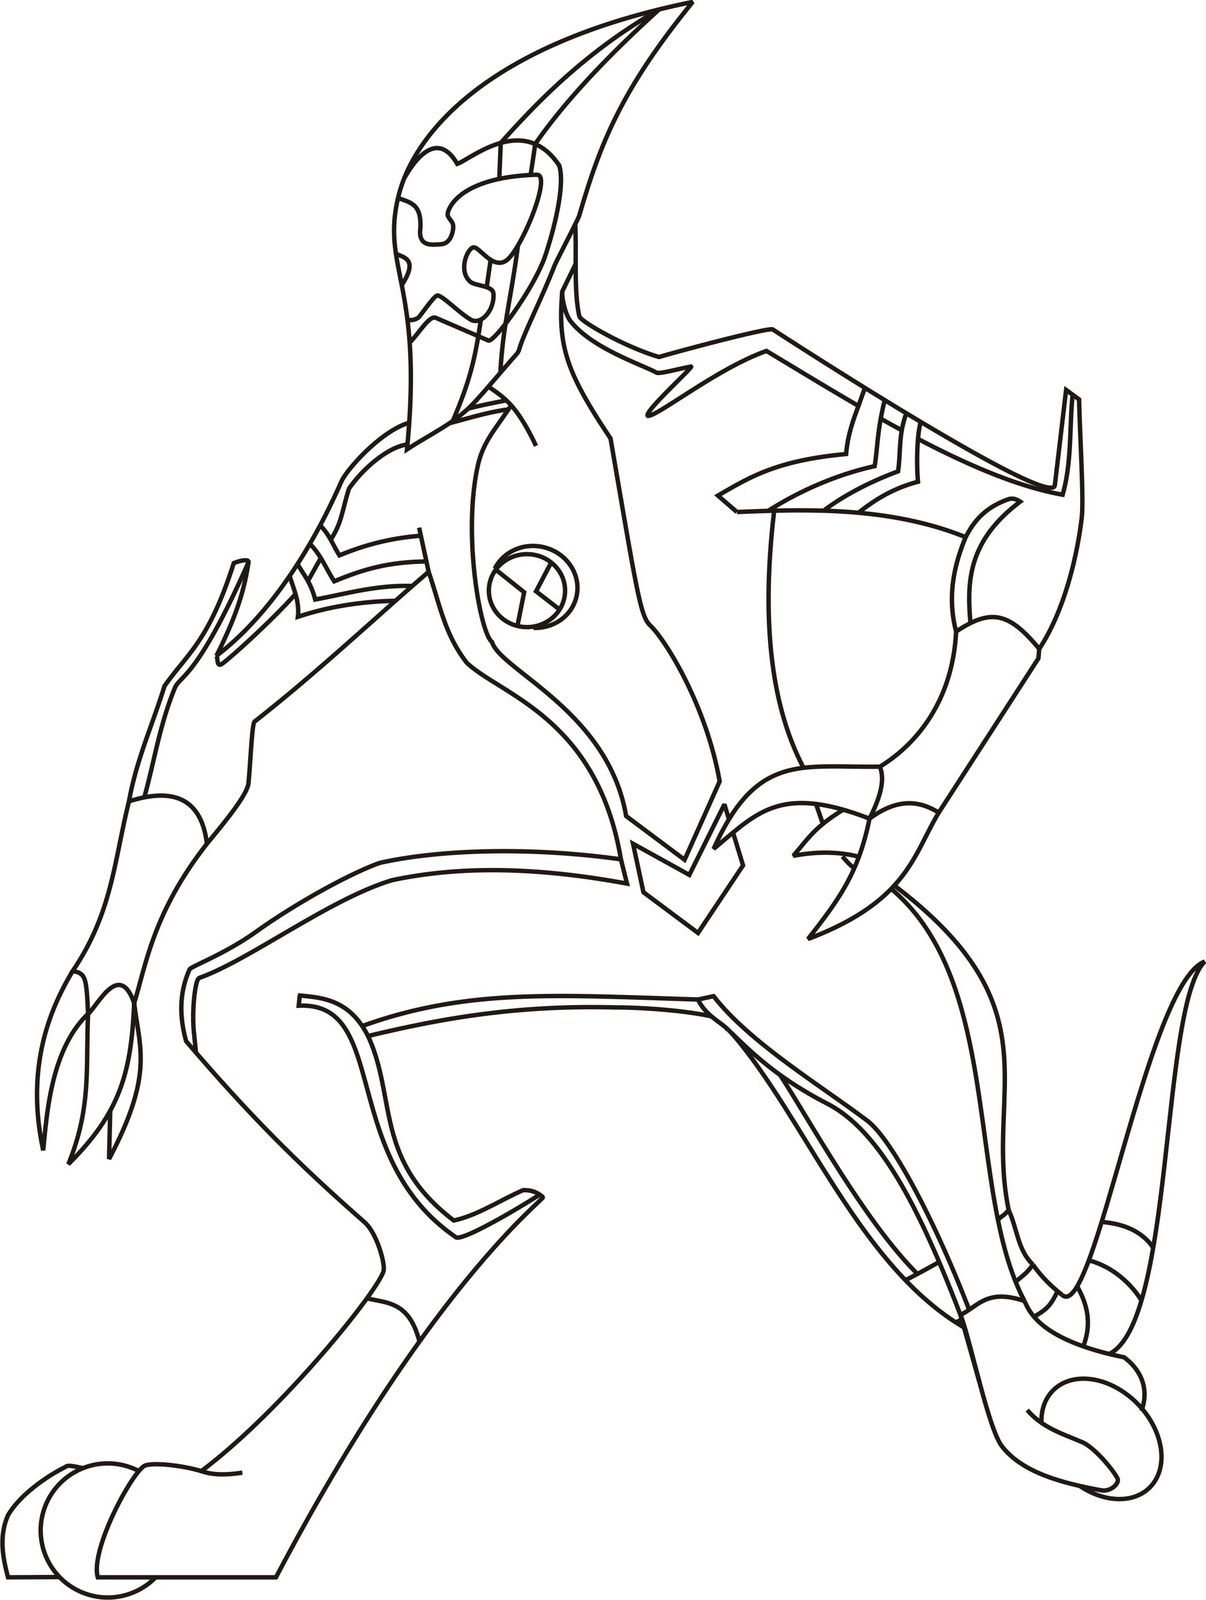 ben 10 online coloring games : Ben 10 Omniverse Coloring Pages